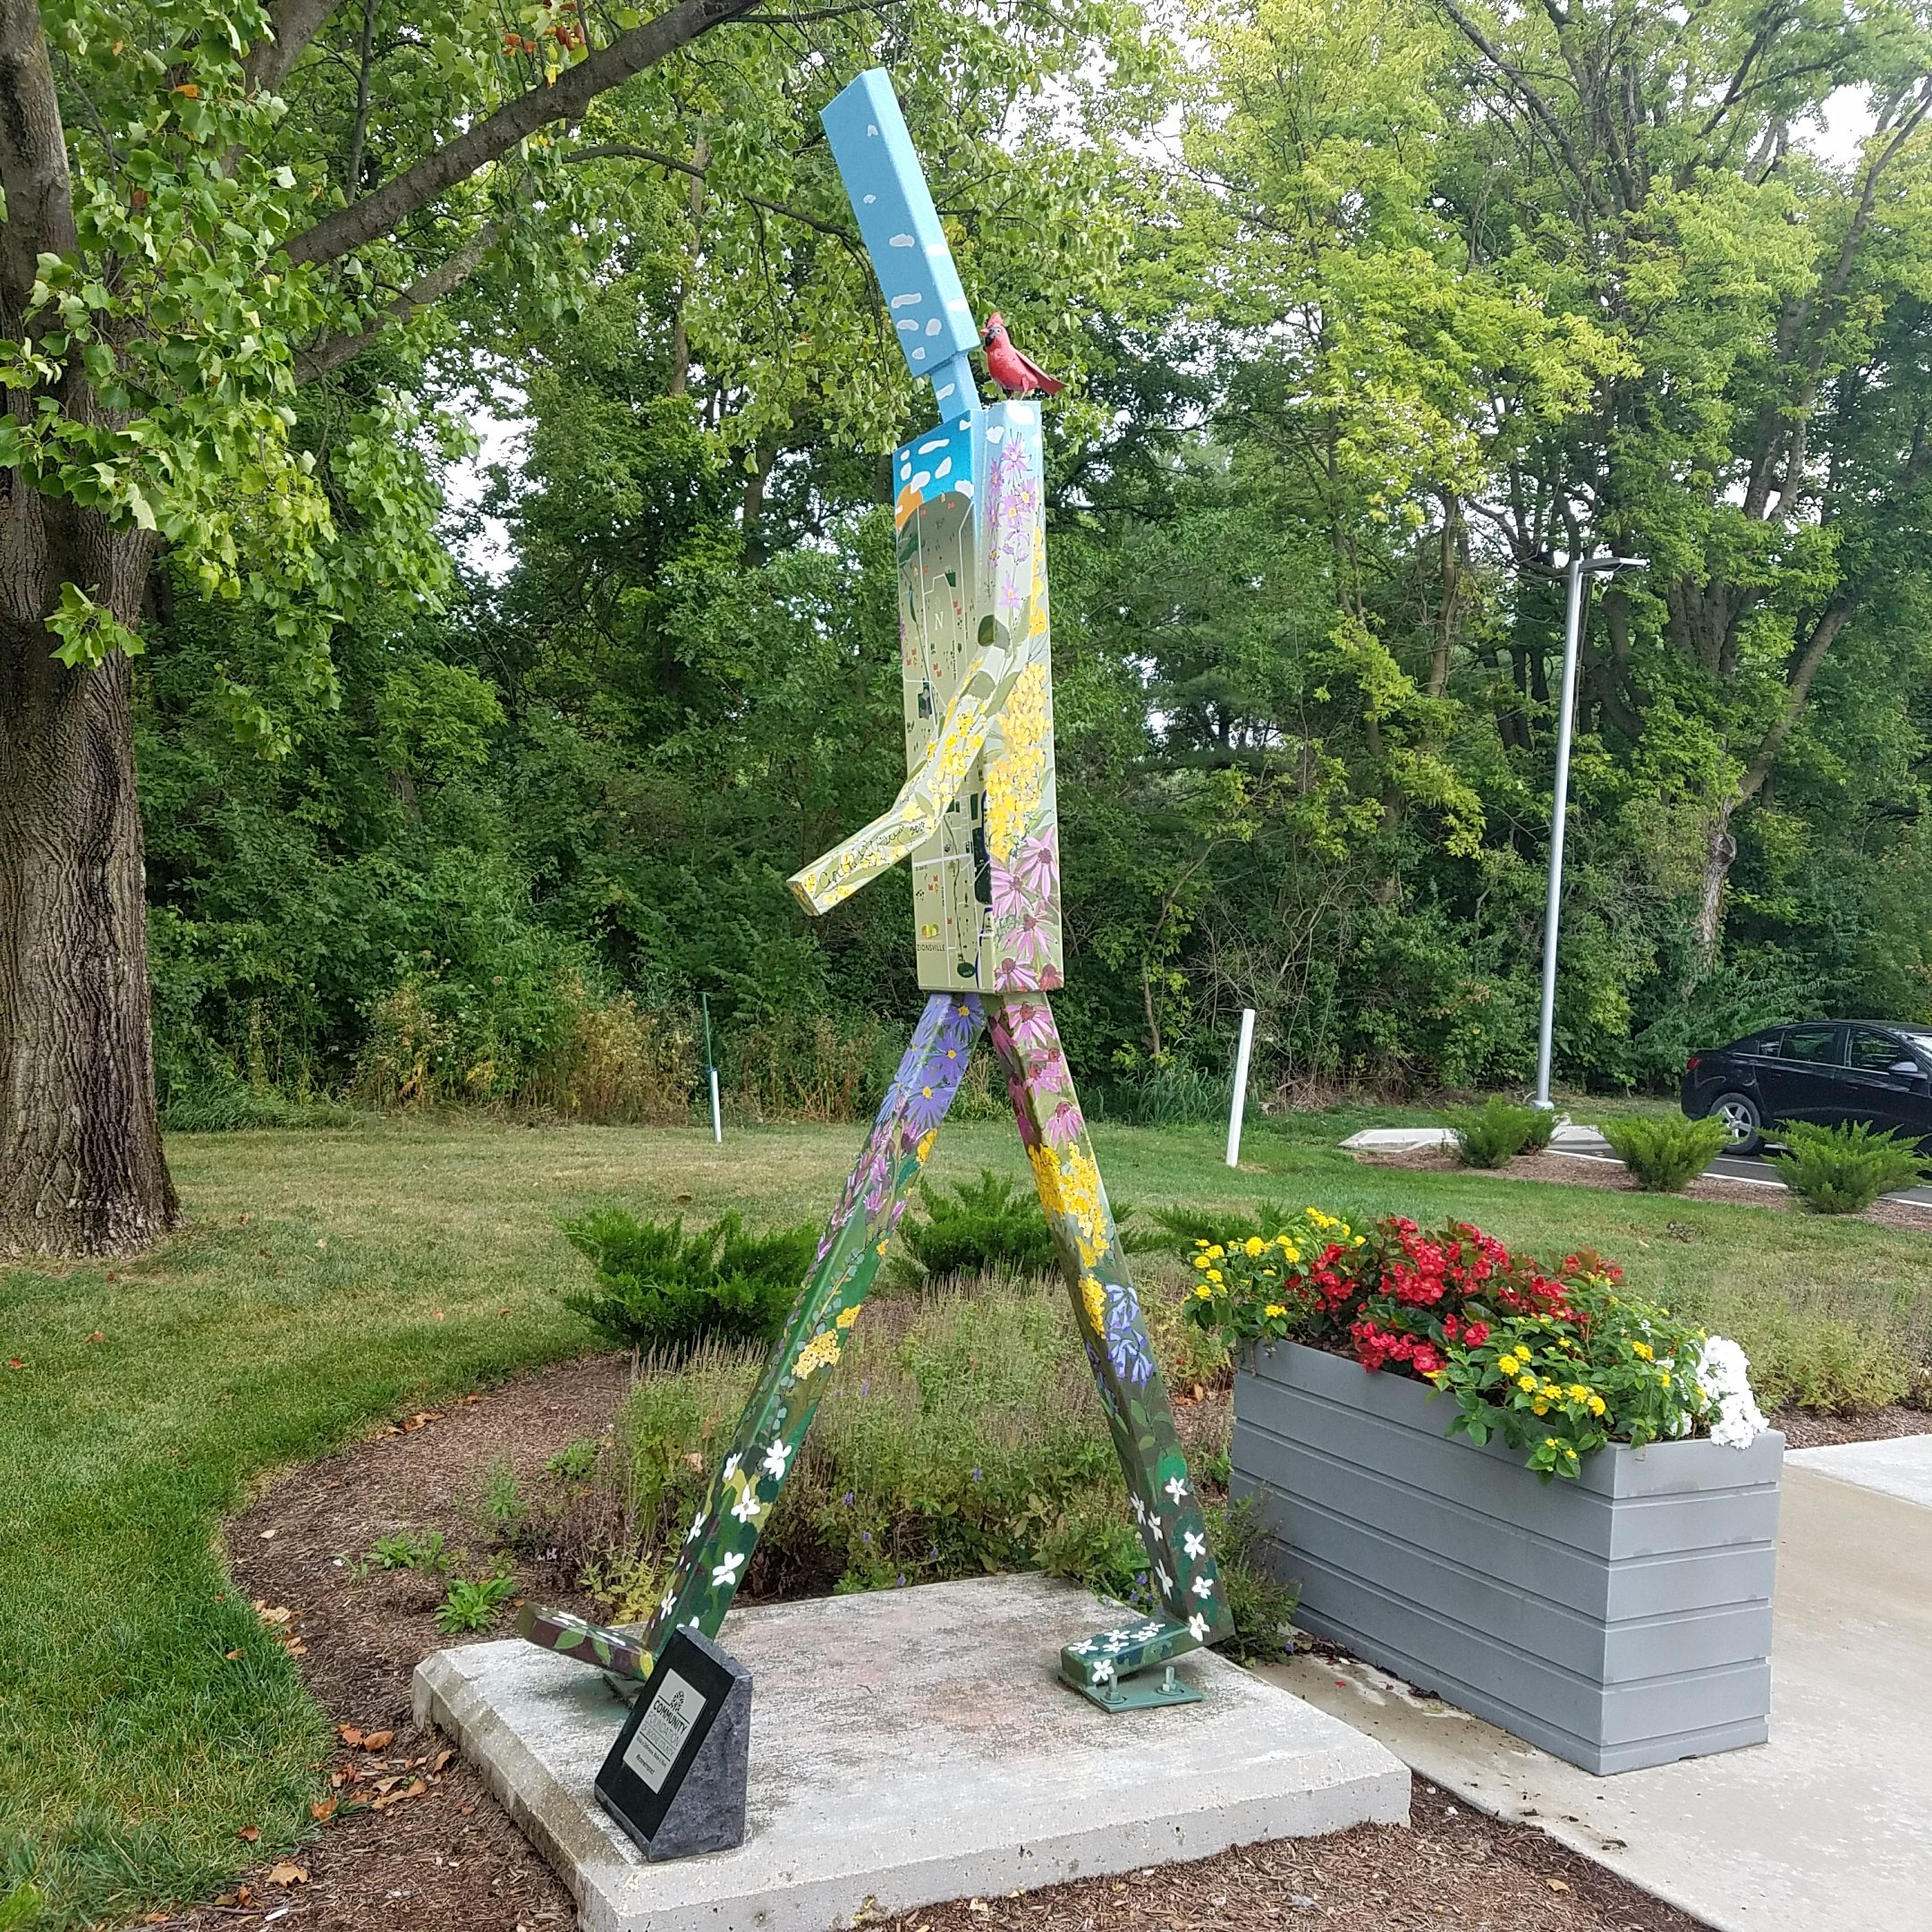 Walking Man Zionsville Indyartsguide Org Images, Photos, Reviews